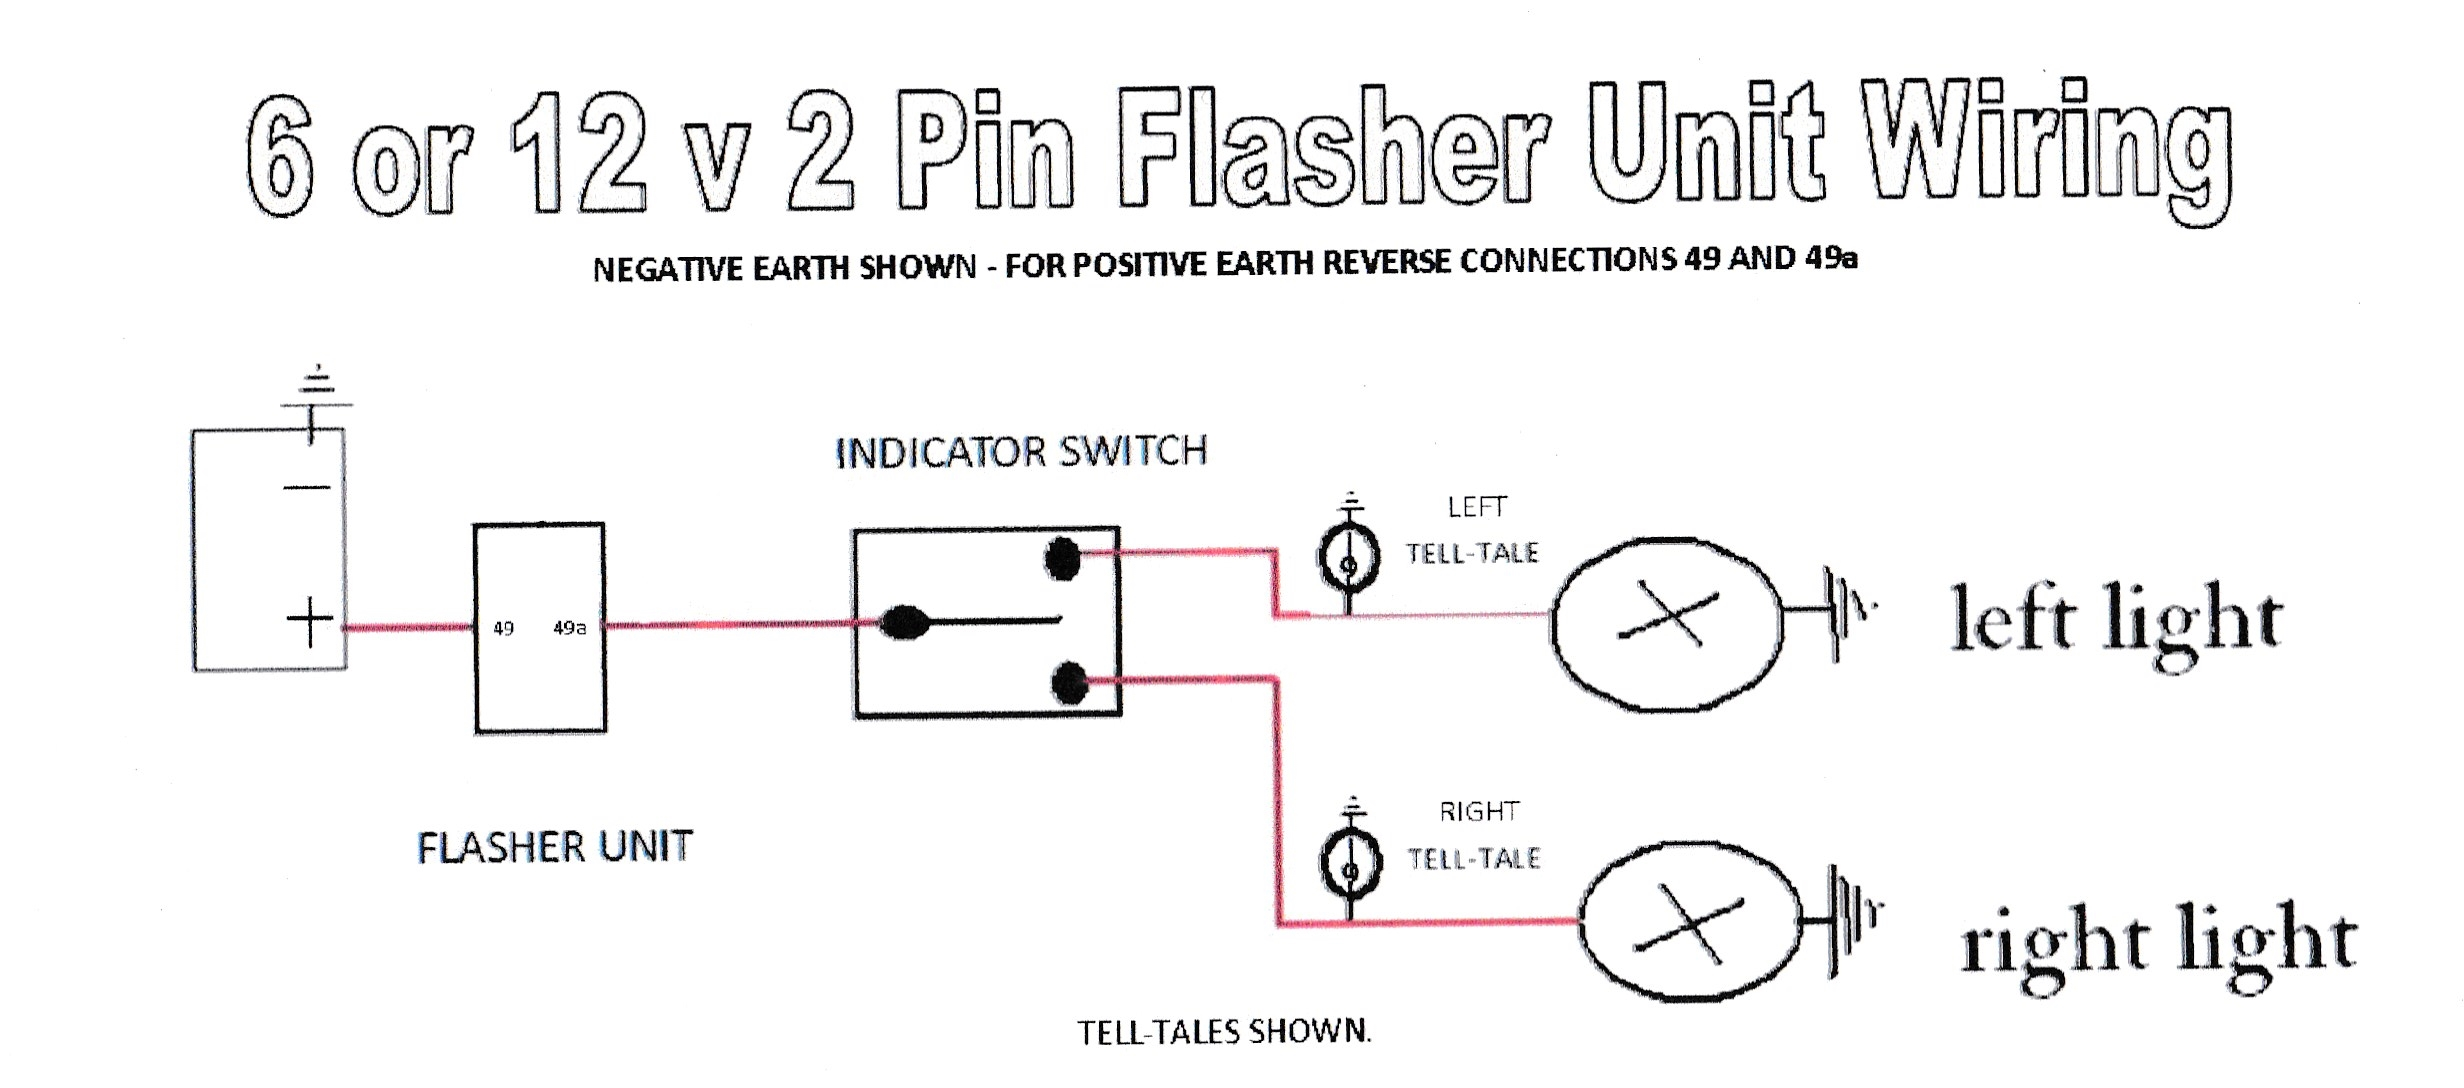 IMG_20150323_0001_NEW 3 pin flasher unit wiring diagram 550 flasher wiring \u2022 wiring 3 pin flasher relay wiring diagram at bayanpartner.co